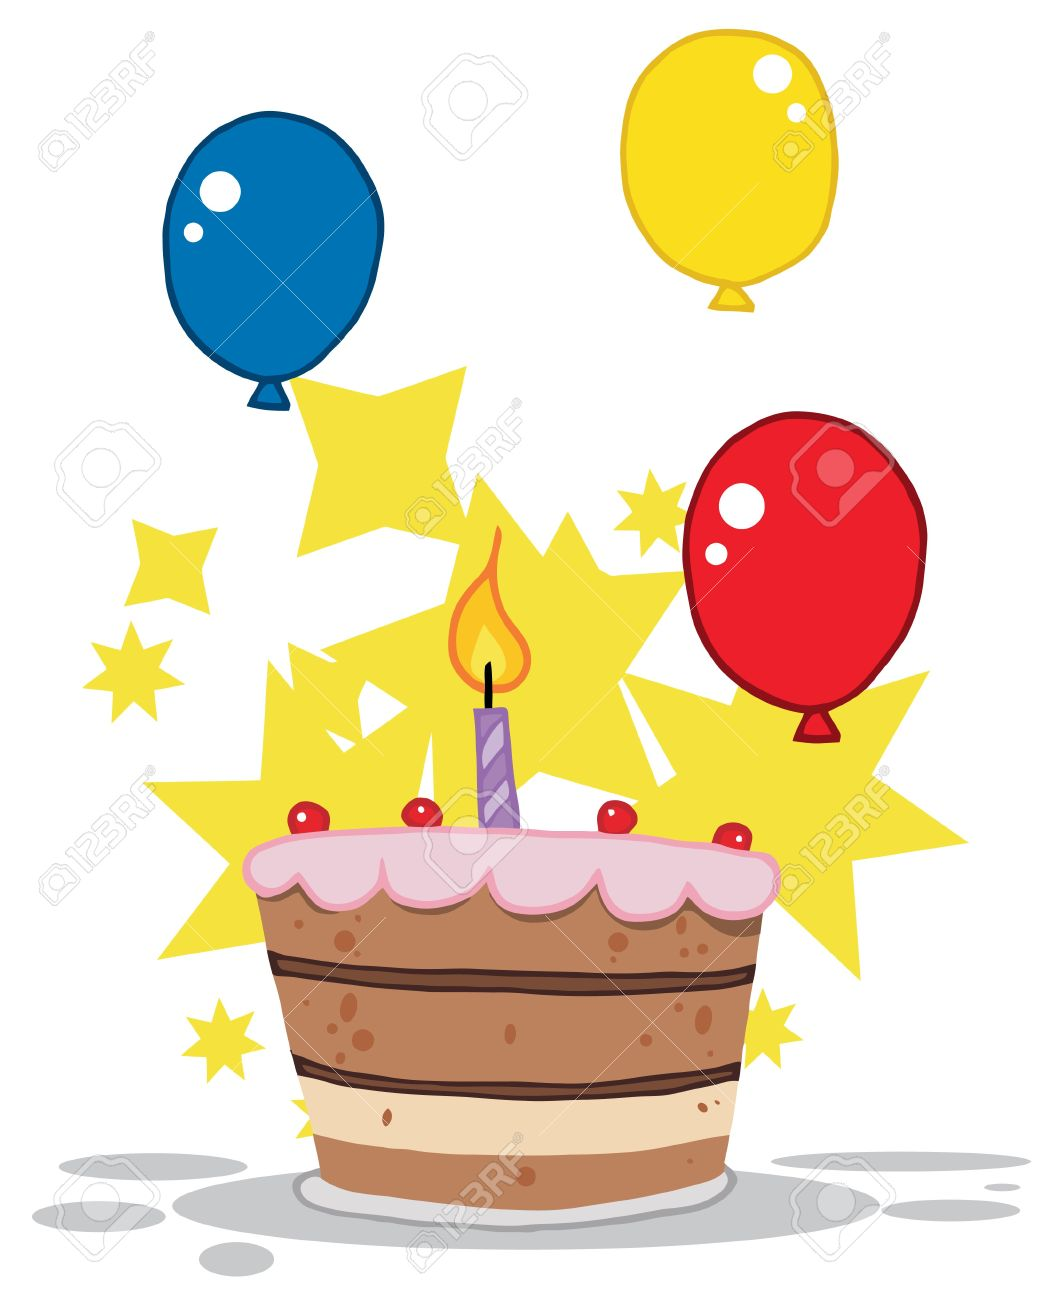 Birthday cake with one candle clipart. Lit and balloons stars